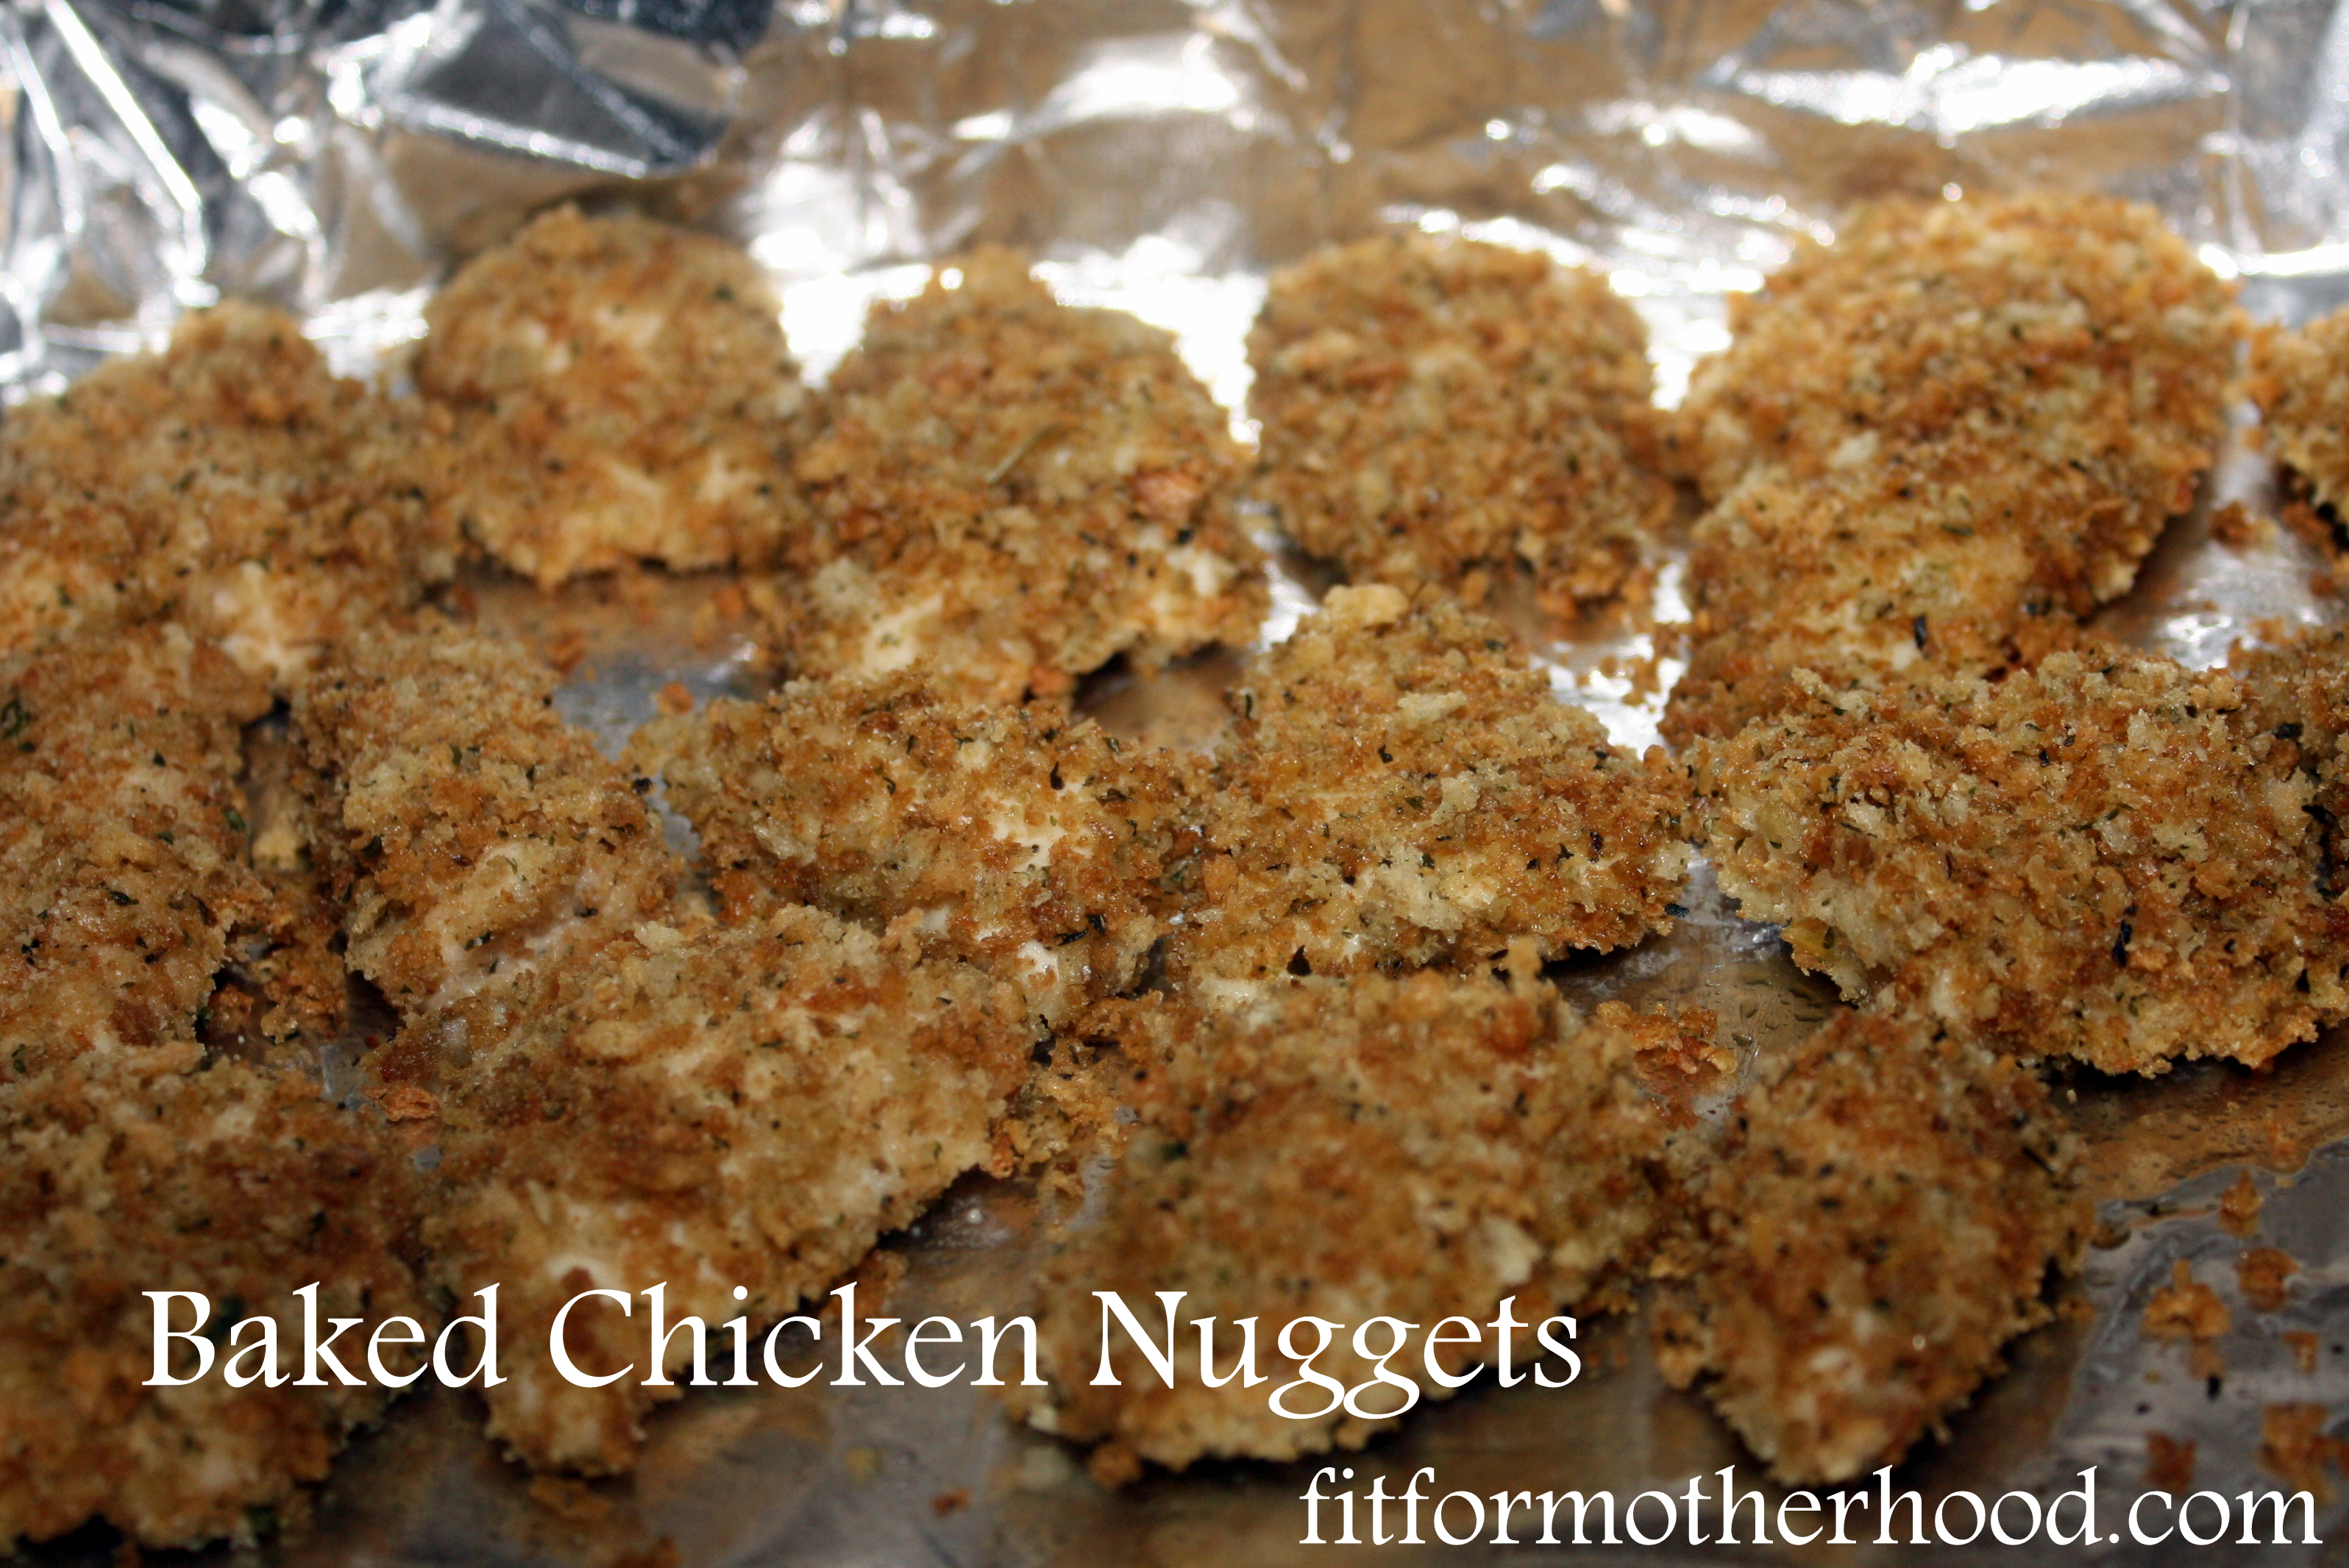 Easy and Healthy Baked Chicken Nuggets | Dinner Ideas